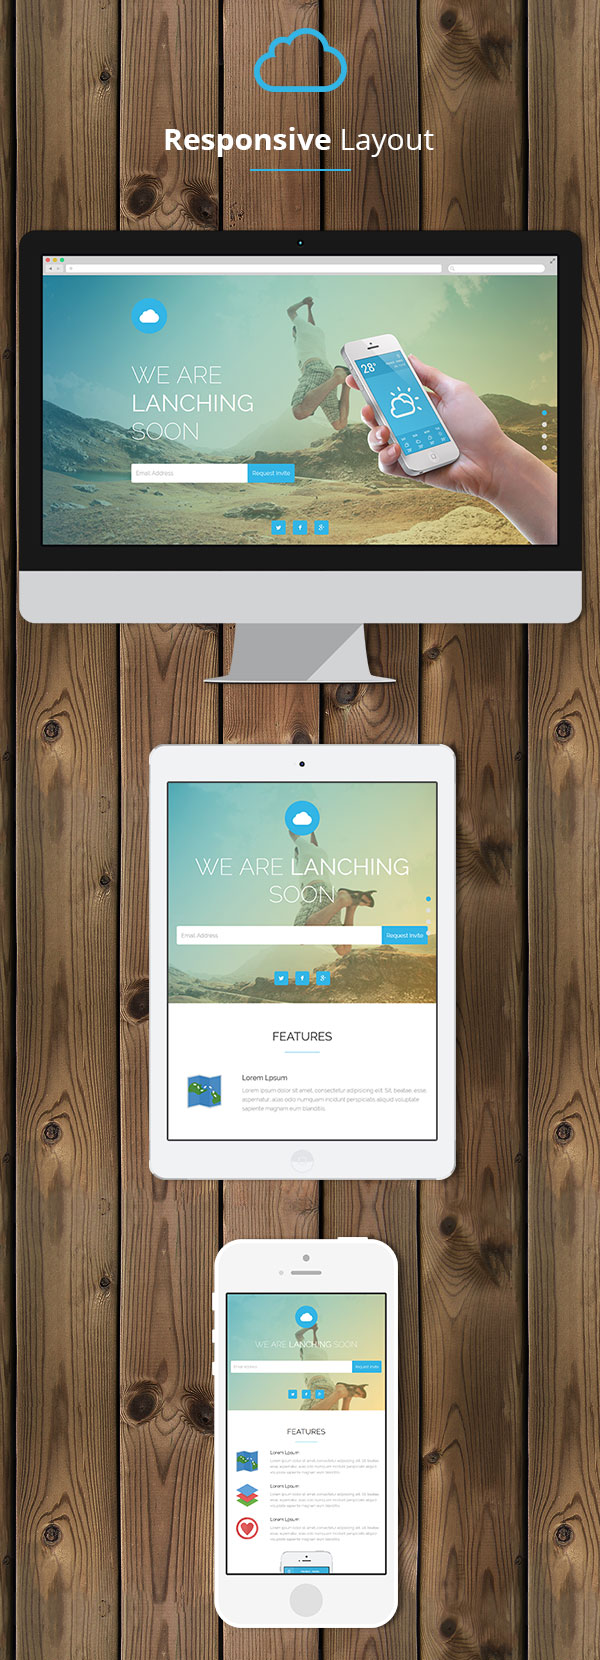 Cloud - Mobile App Coming Soon Responsive Template | Prosyscom Tech 5